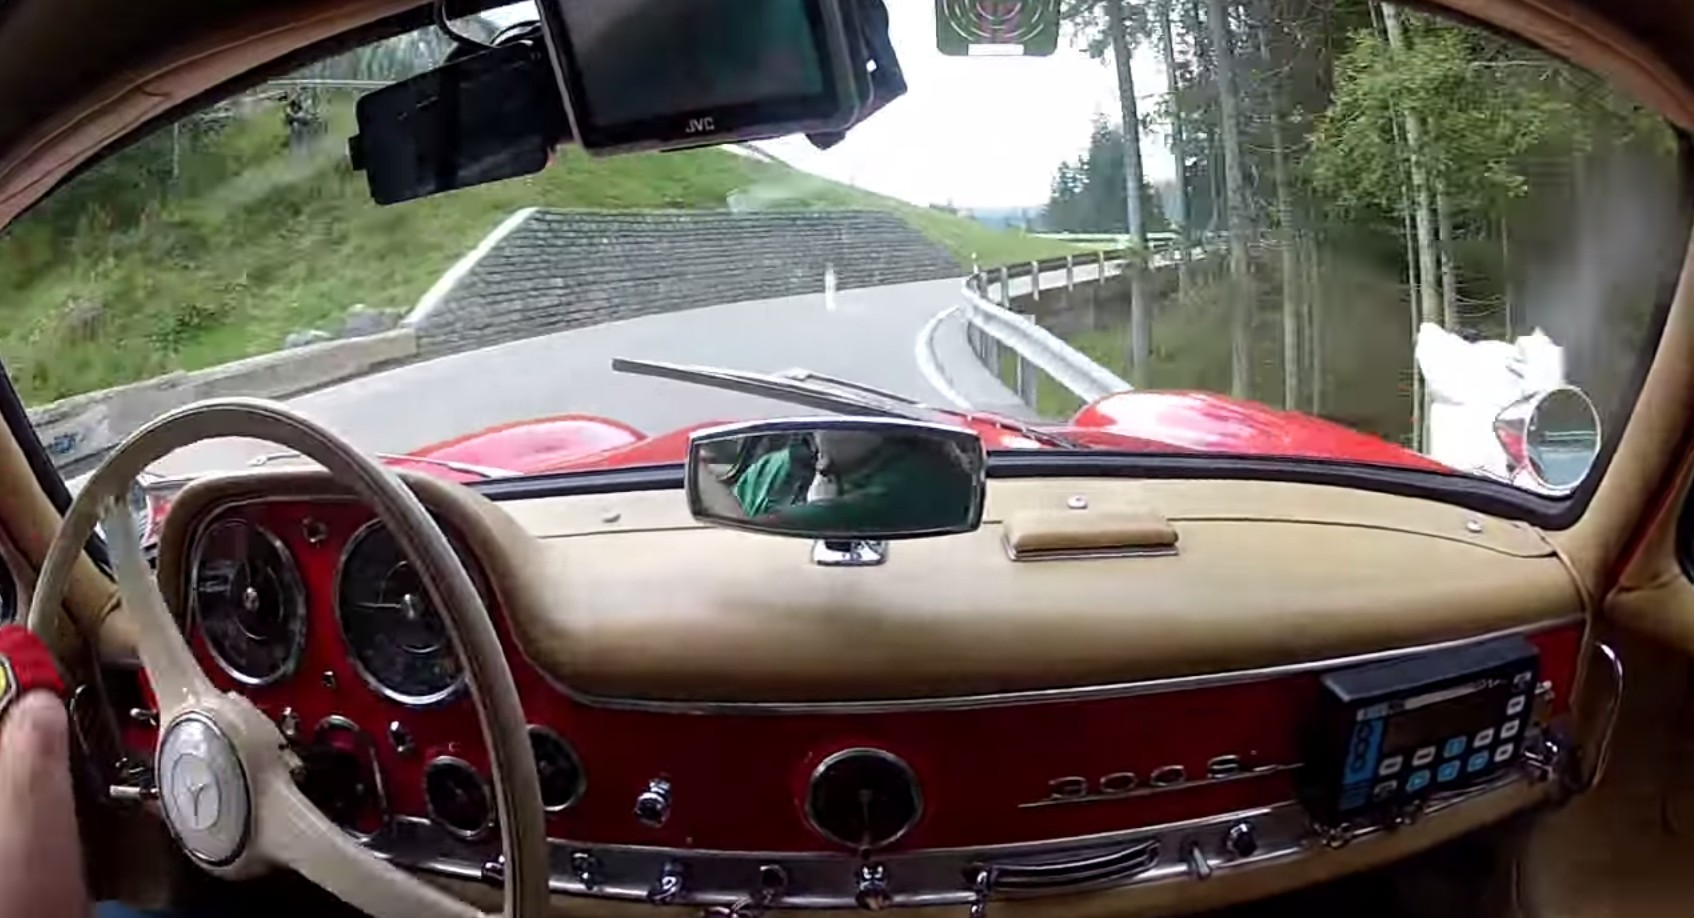 Mercedes-Benz 300 SL Driven Flat-Out On Mountain Hillclimb Is Pure White-Knuckled Amazing: Video